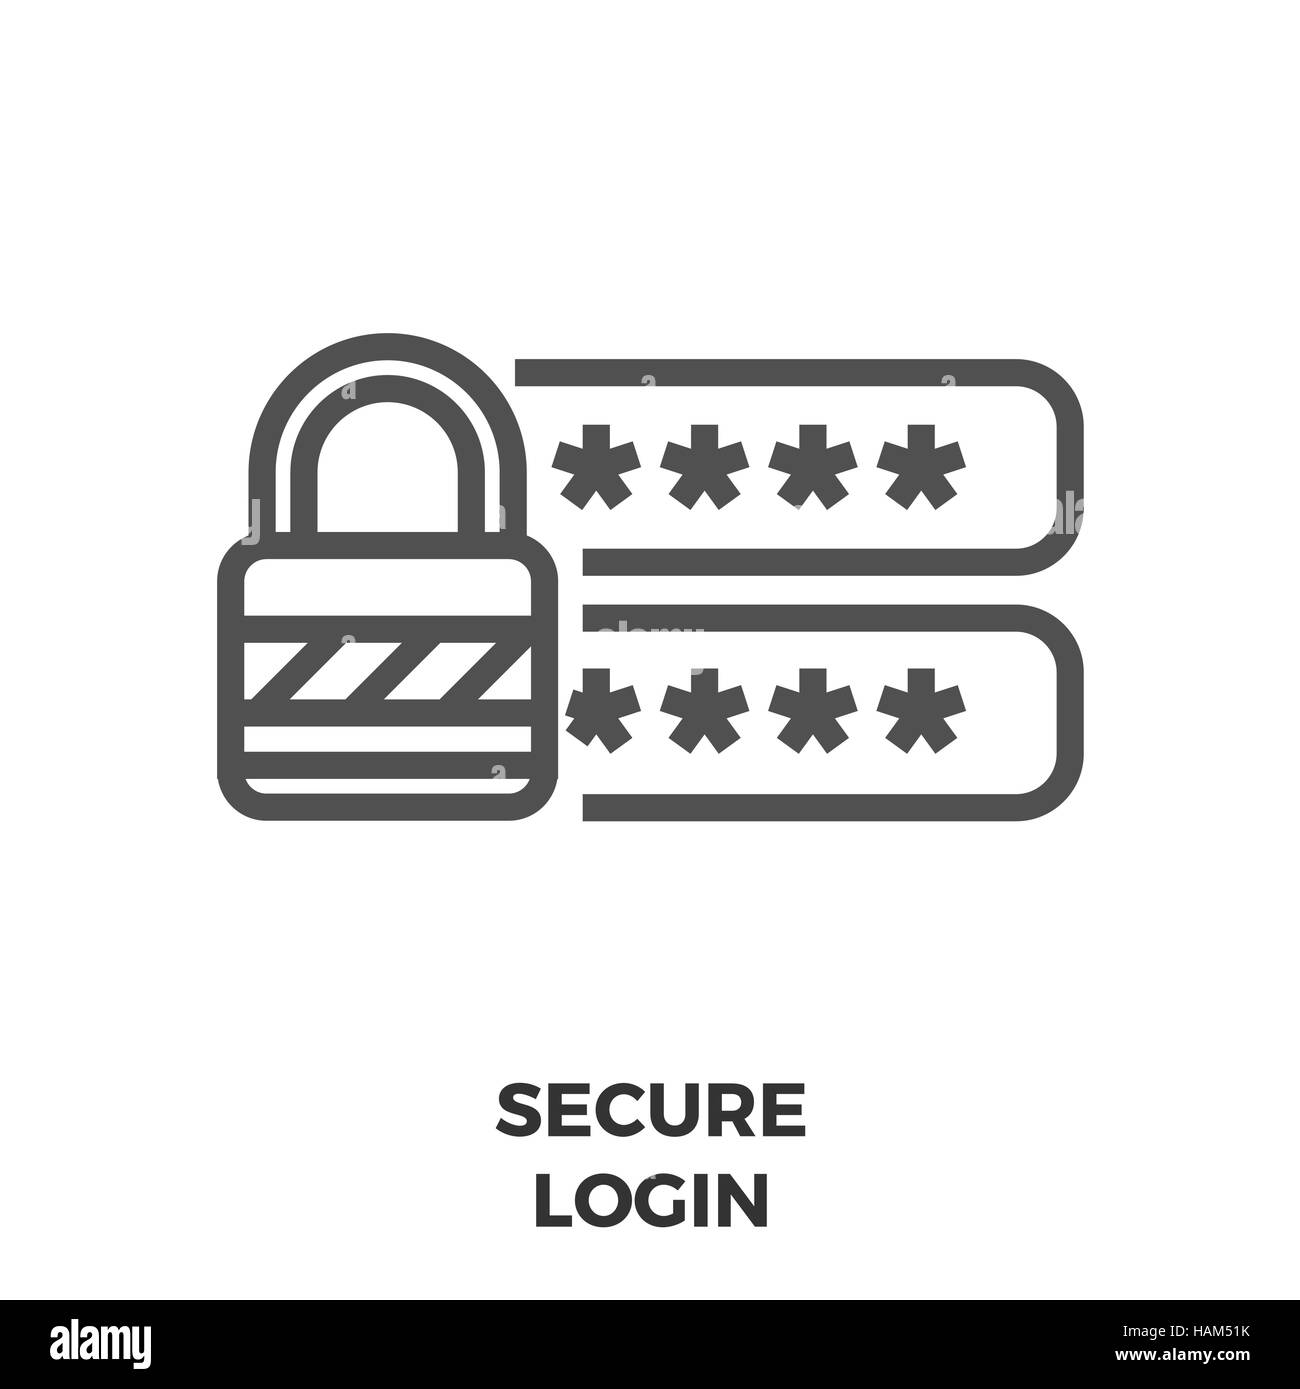 Secure Login Thin Line Vector Icon Isolated on the White Background. - Stock Image